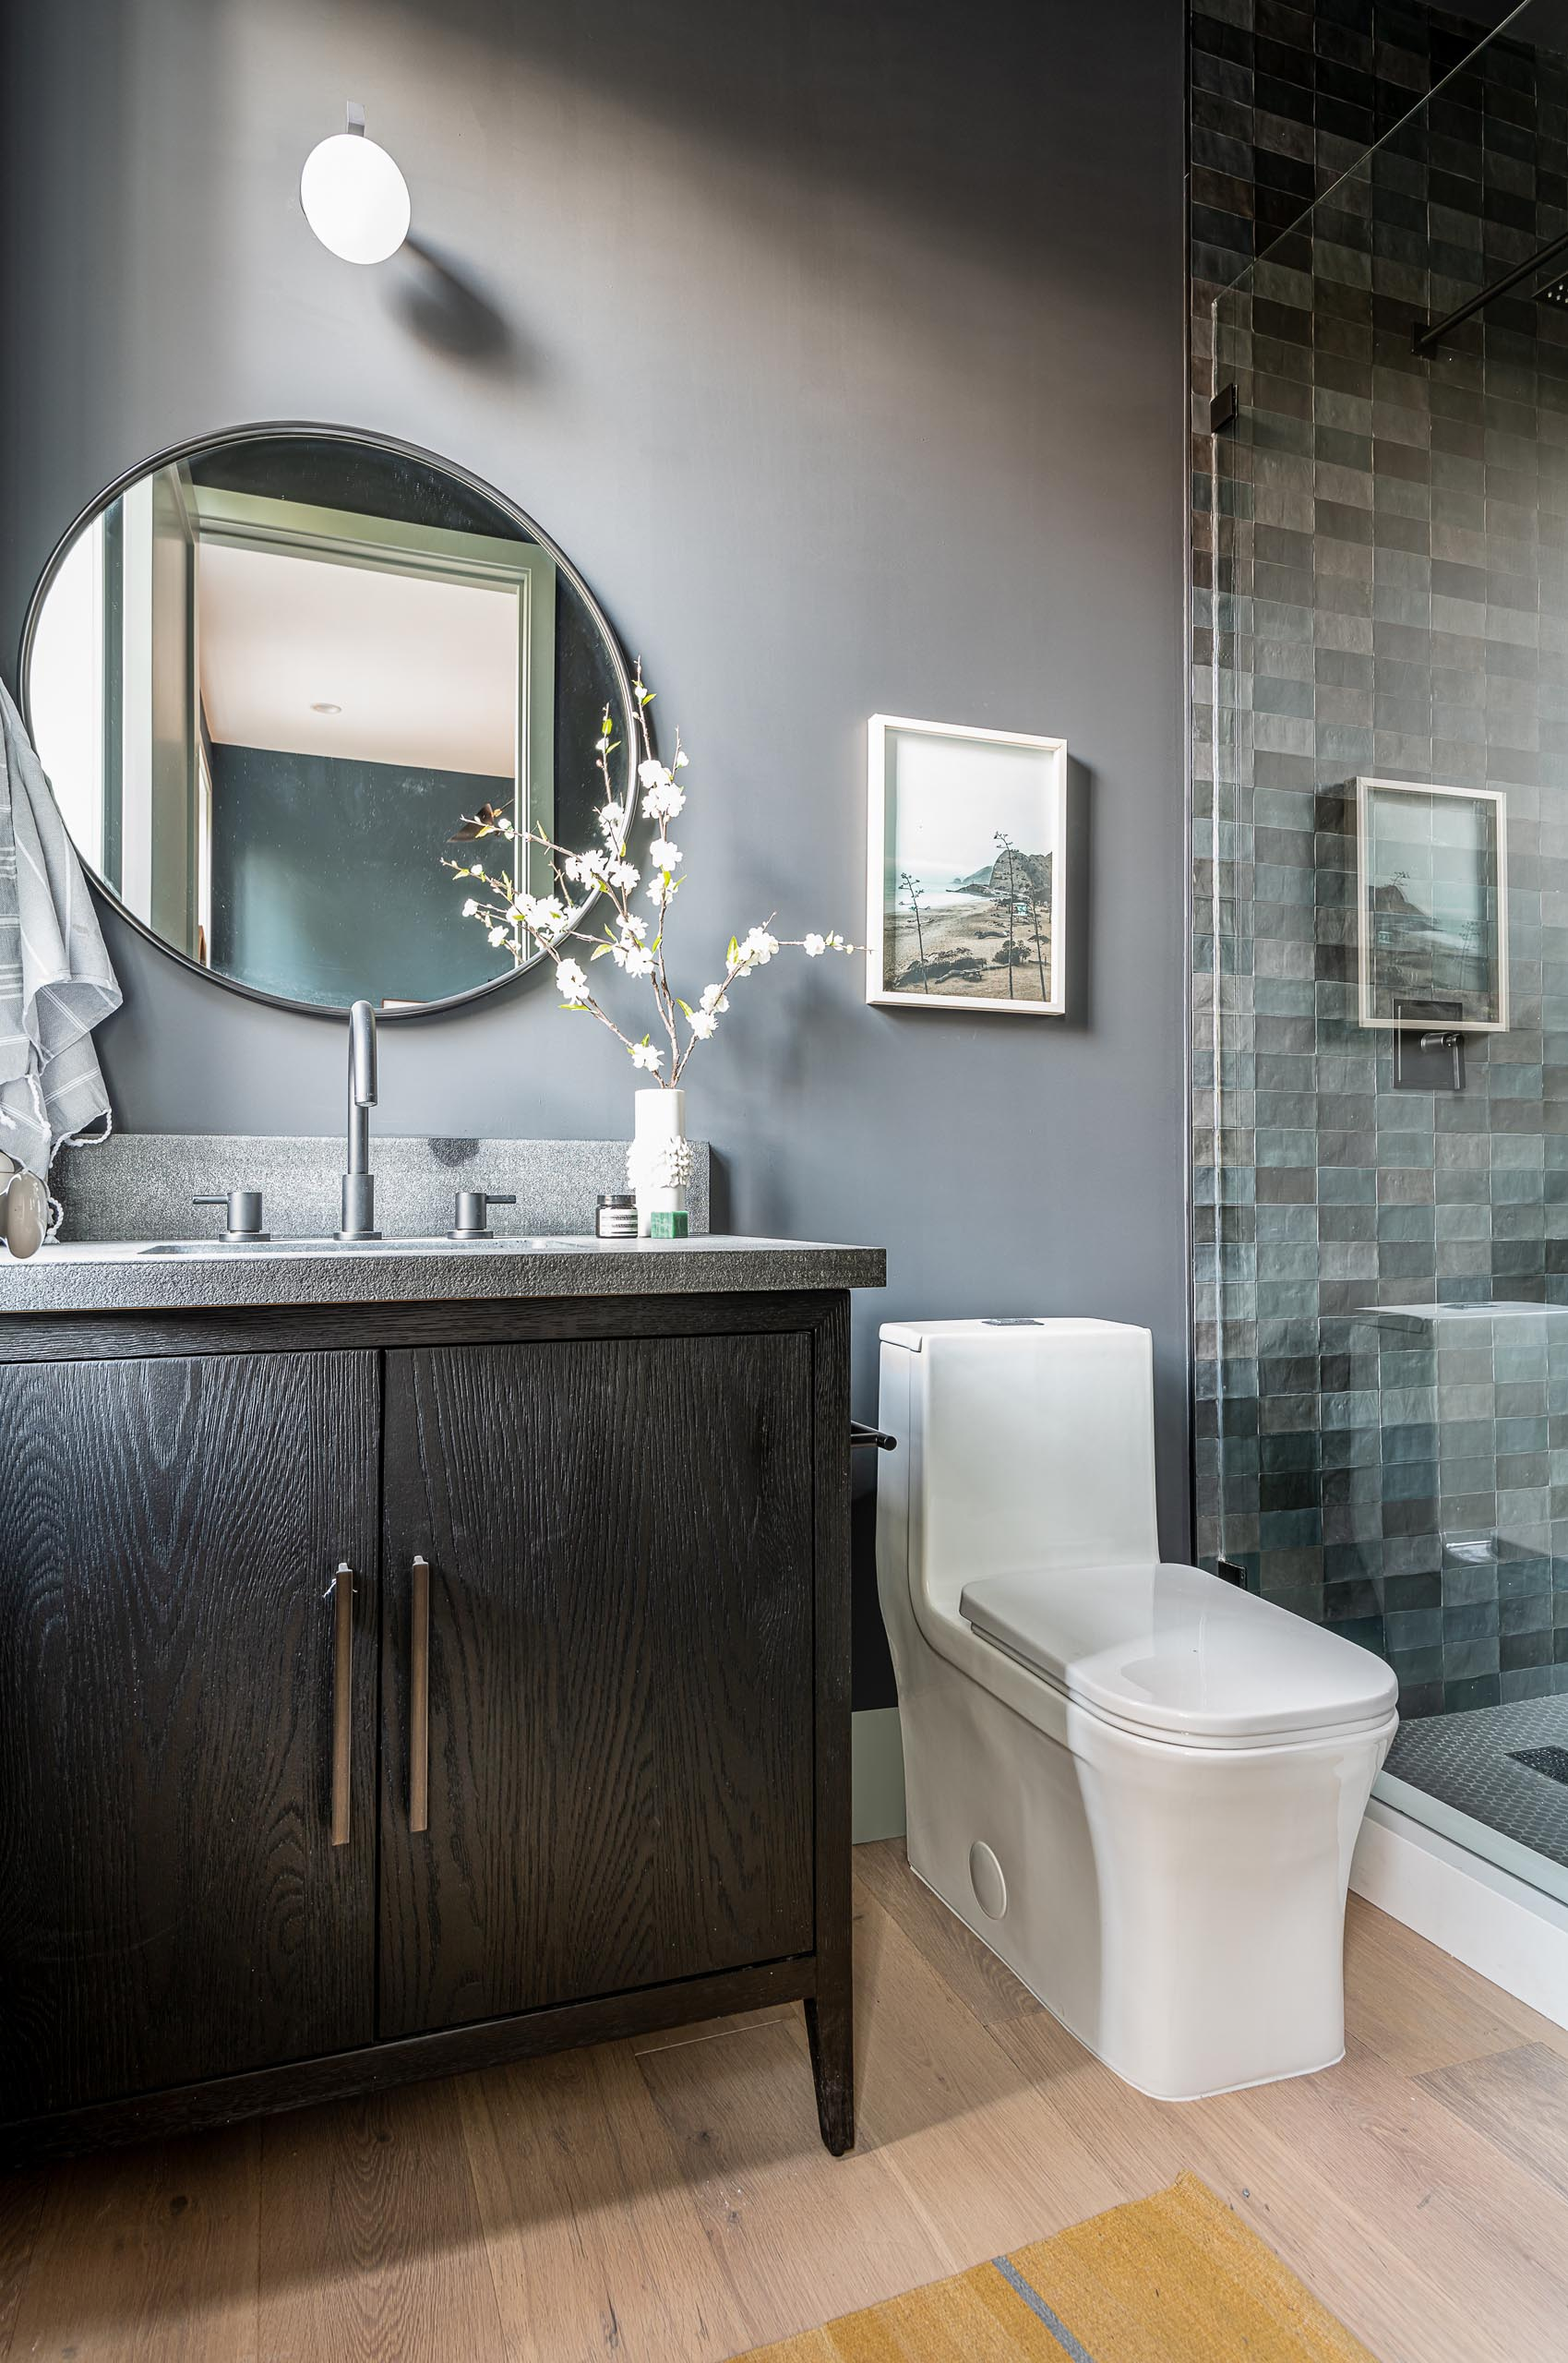 A modern bathroom with light gray walls, a round mirror, and a dark wood vanity.